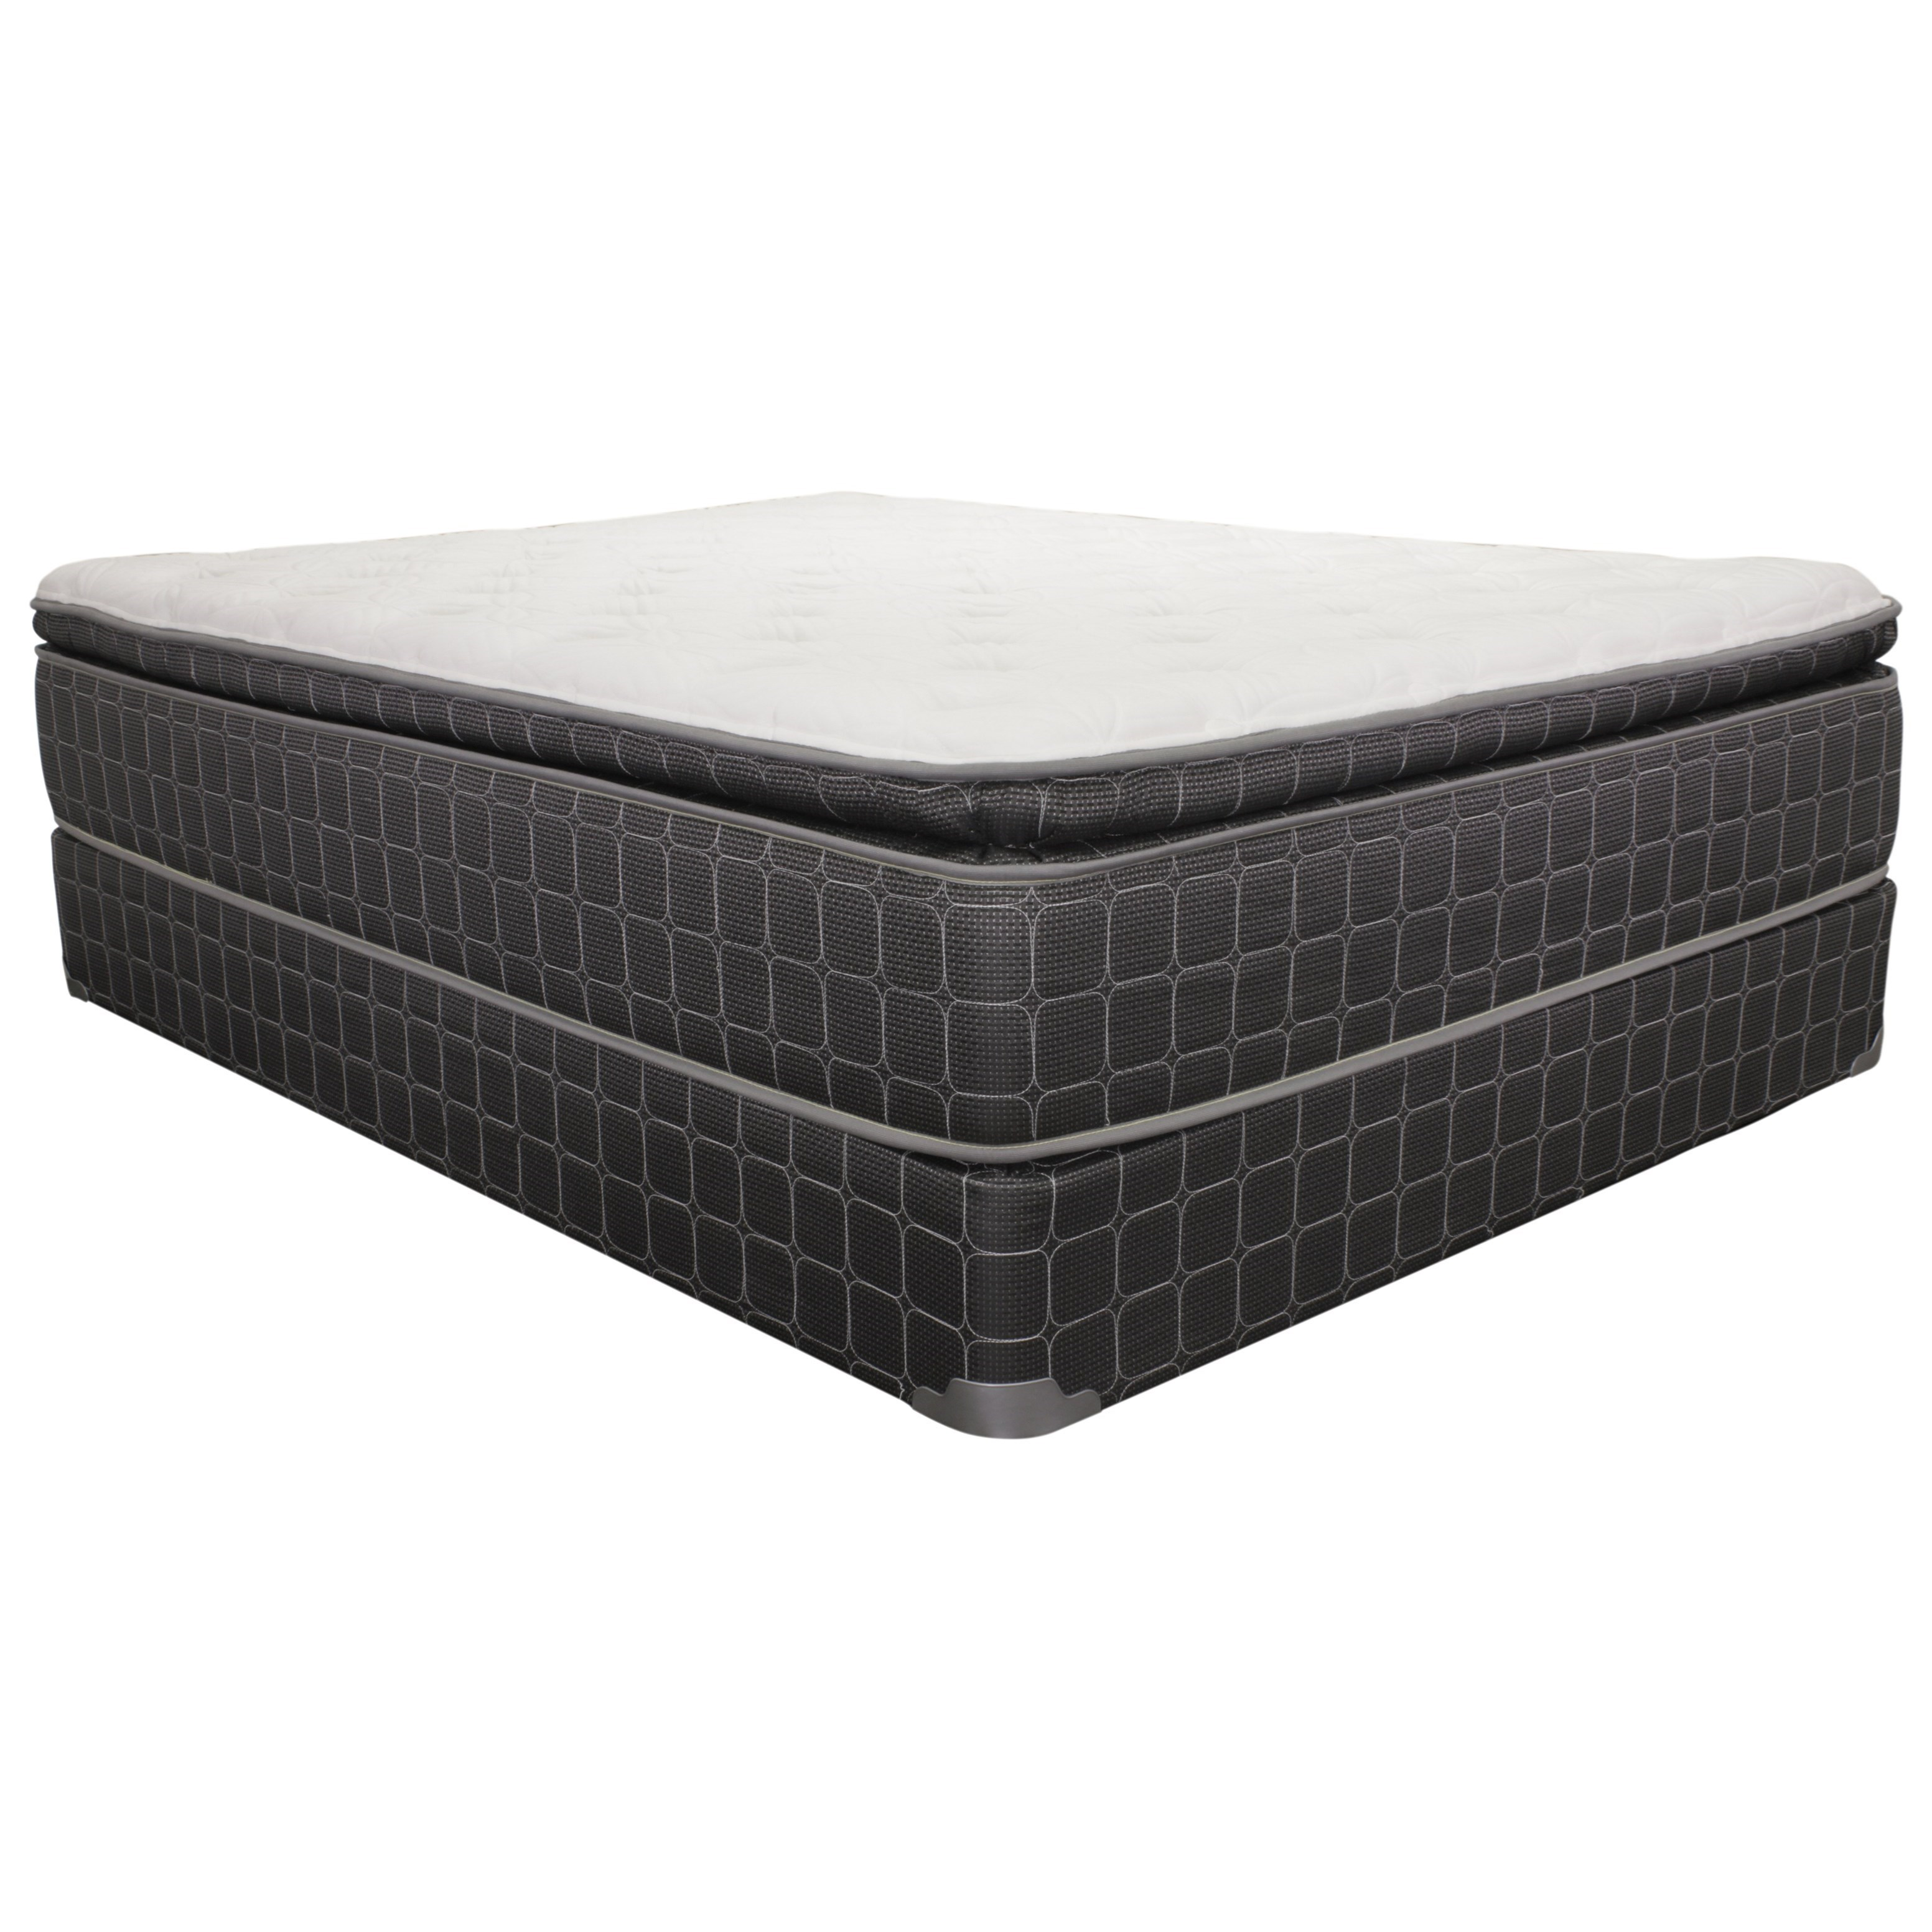 "Queen 14"" Pillow Top Mattress Set"